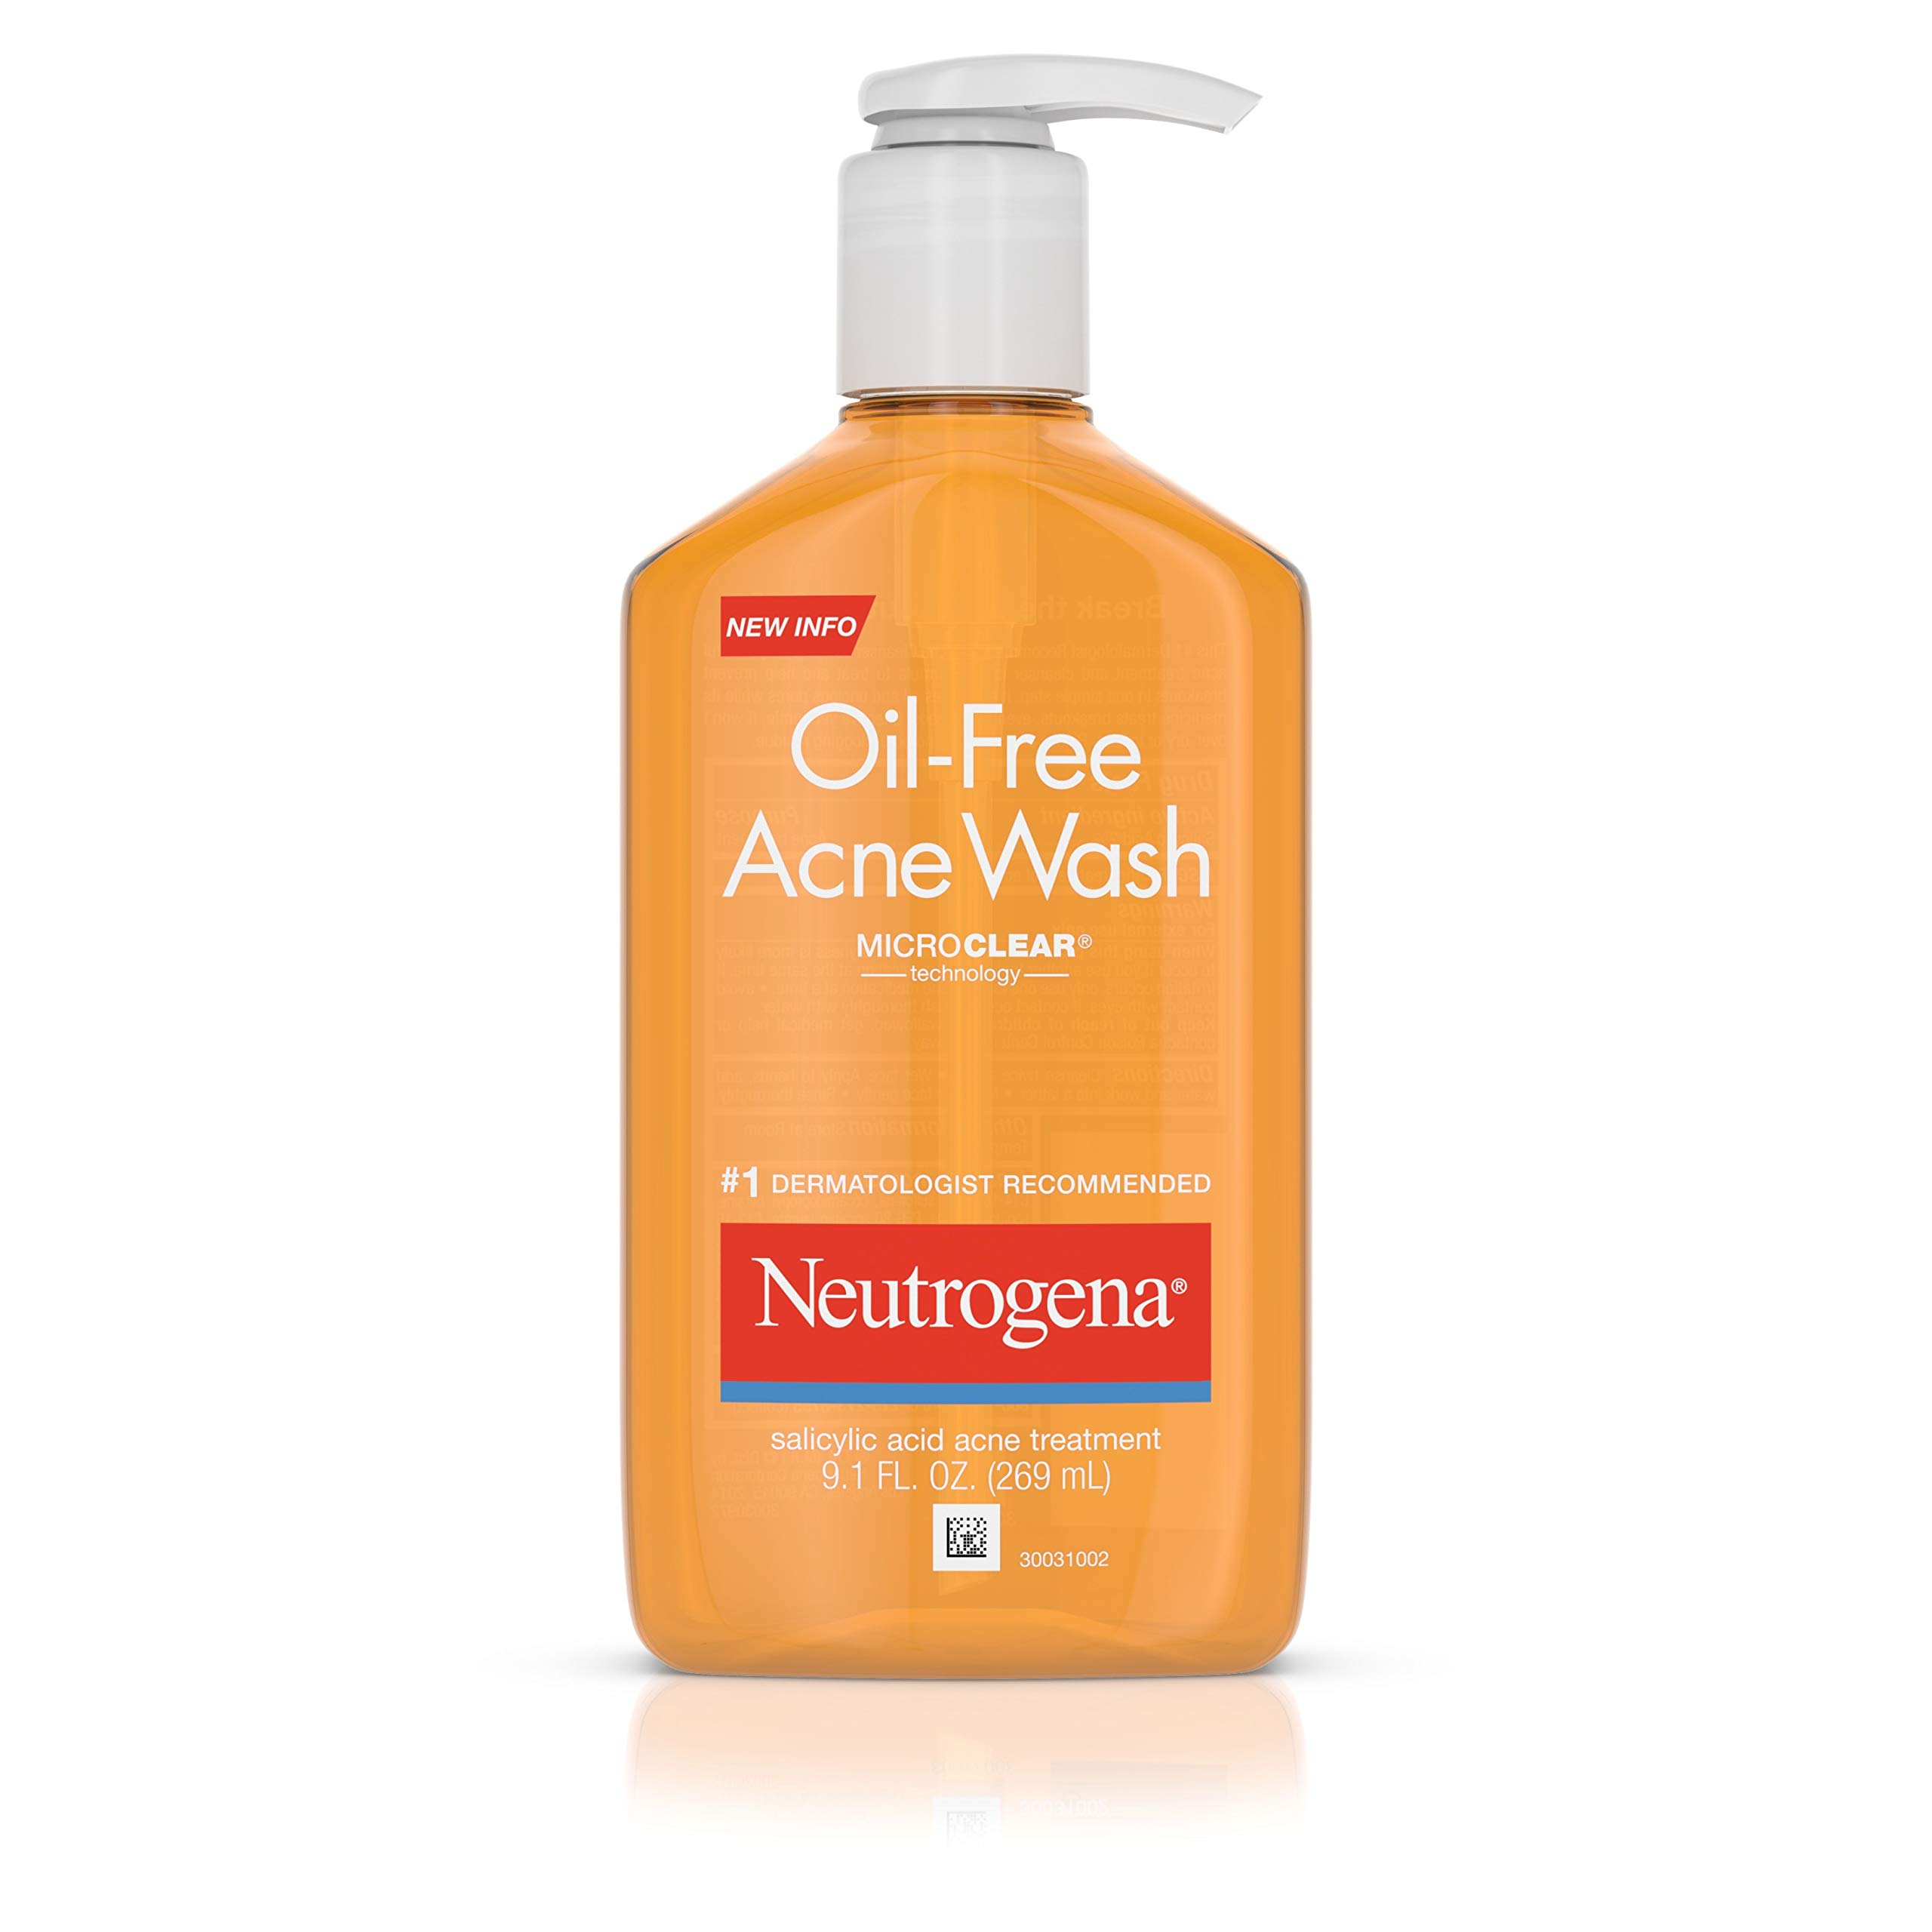 Neutrogena Oil-Free Acne Fighting Facial Cleanser with Salicylic Acid Acne Treatment medicine,, Daily Oil Free Acne Face Wash for Acne-Prone Skin with Salicylic Acid Medicine, 9.1 fl. oz (Pack of 3) by Neutrogena